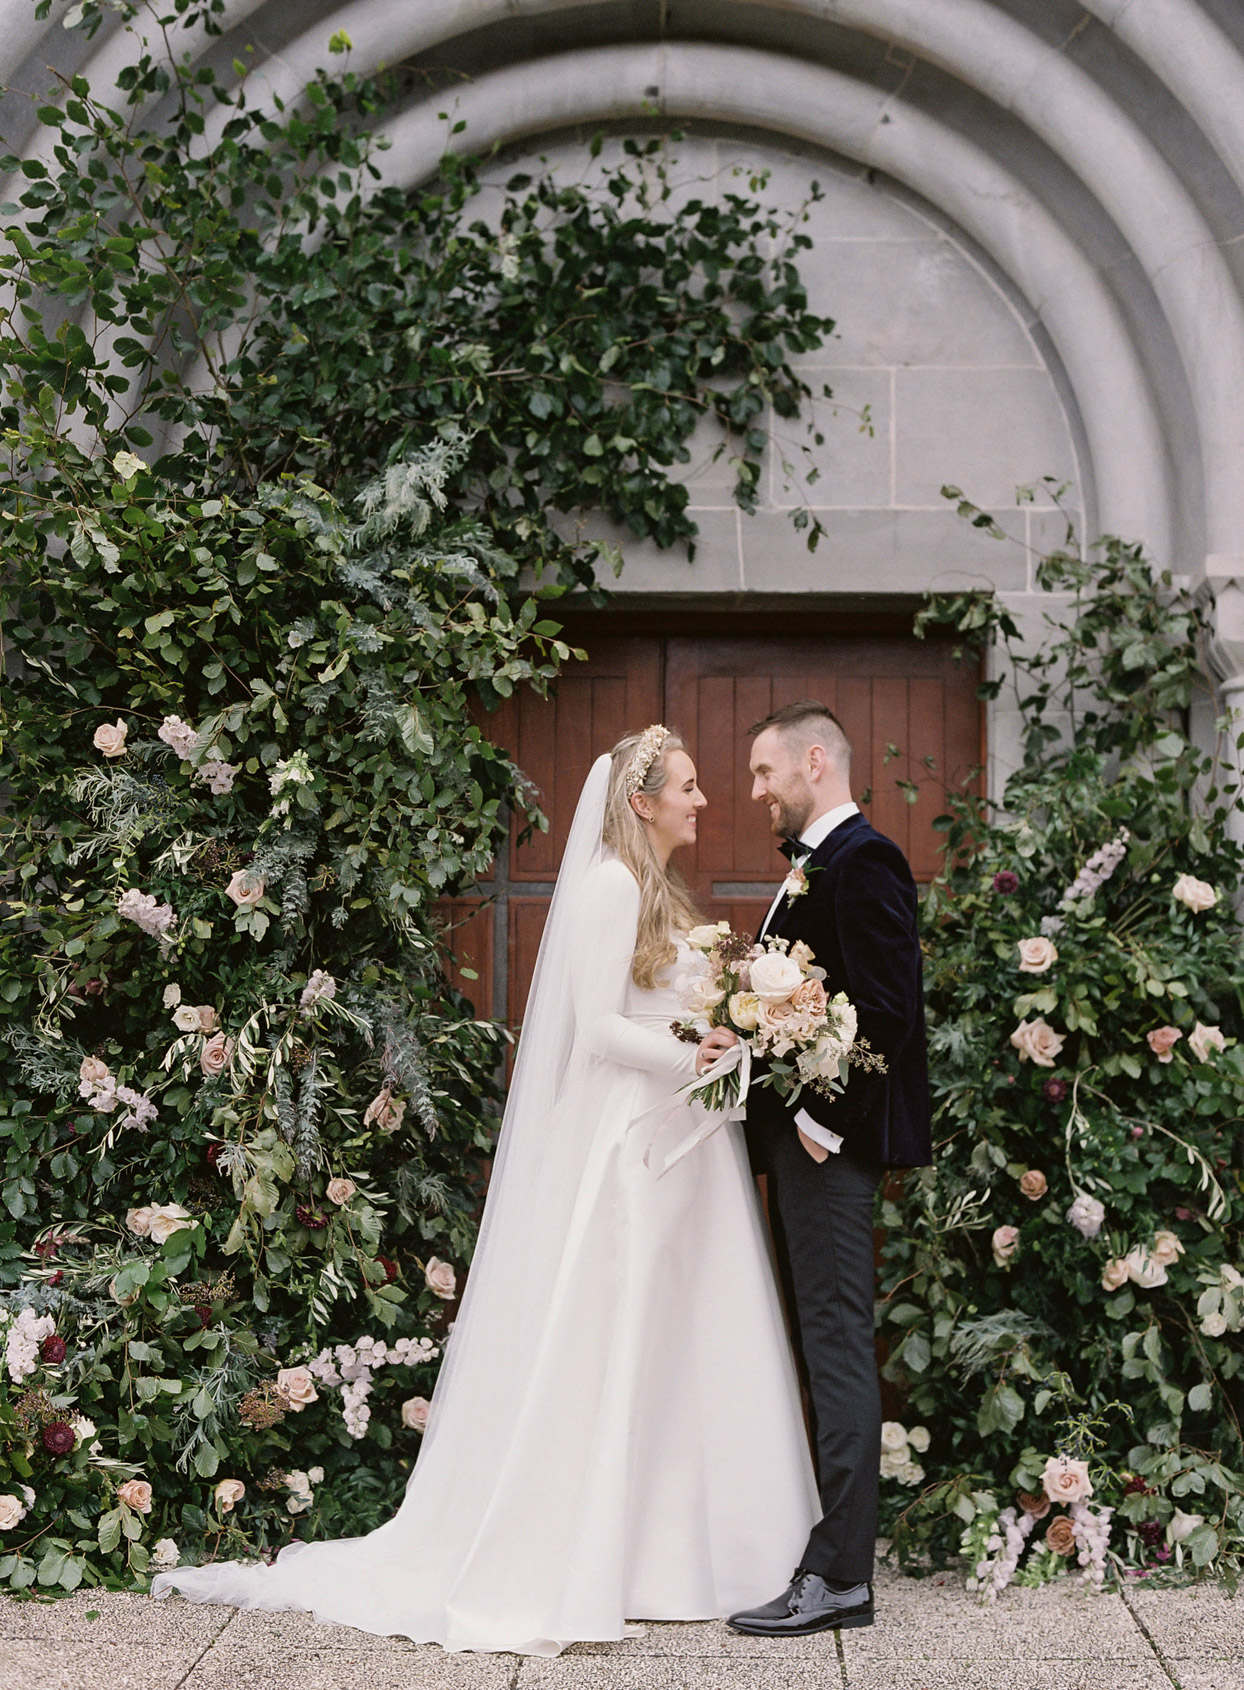 wedding couple standing together under greenery arch in front of chapel door